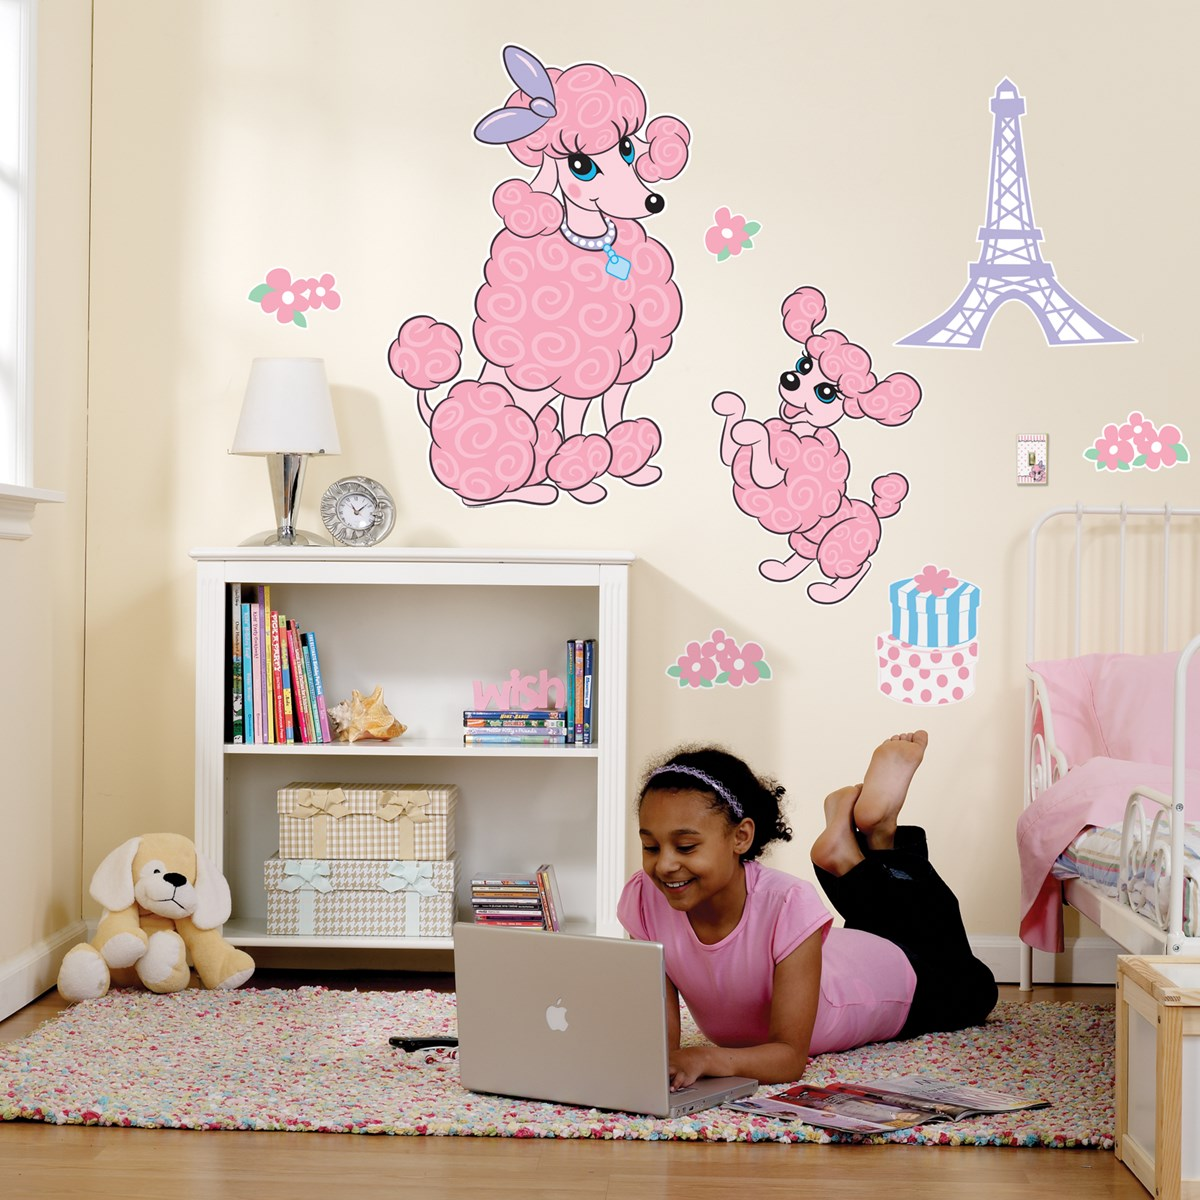 Pink poodle in paris giant wall decals birthdayexpress amipublicfo Choice Image